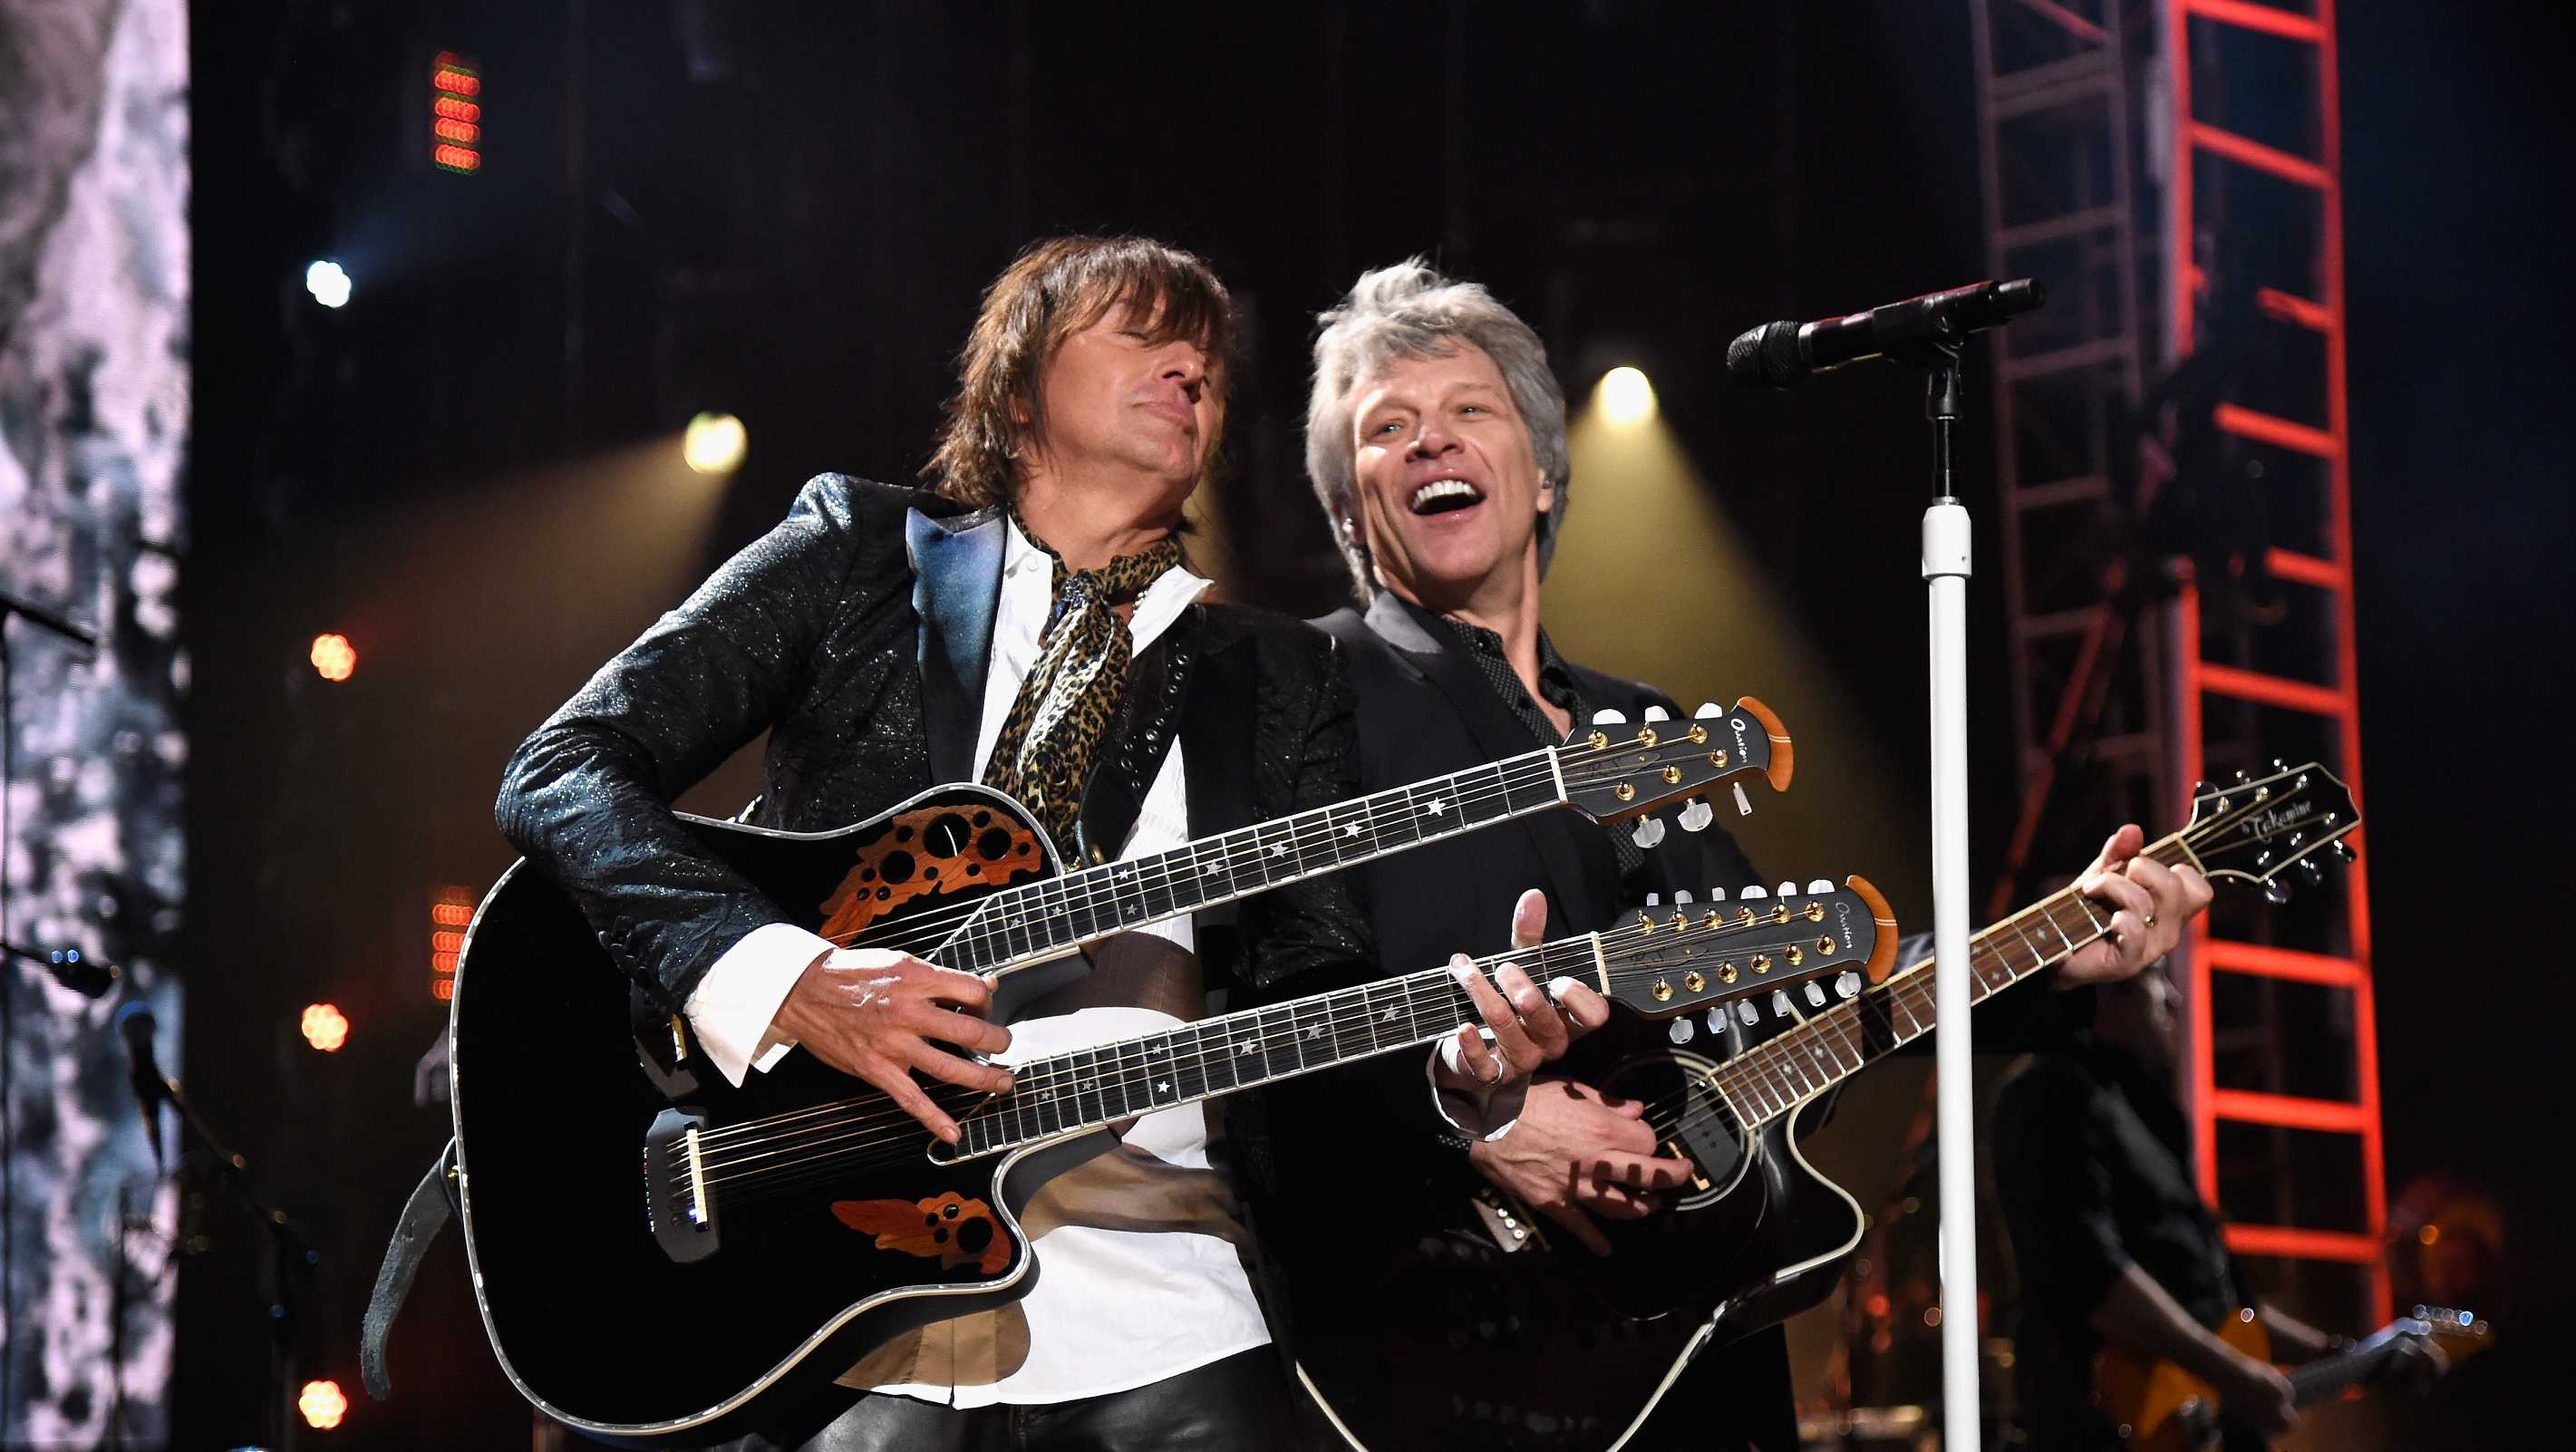 Inductees Richie Sambora and Jon Bon Jovi of Bon Jovi perform during the 33rd Annual Rock & Roll Hall of Fame Induction Ceremony at Public Auditorium on April 14, 2018 in Cleveland, Ohio.